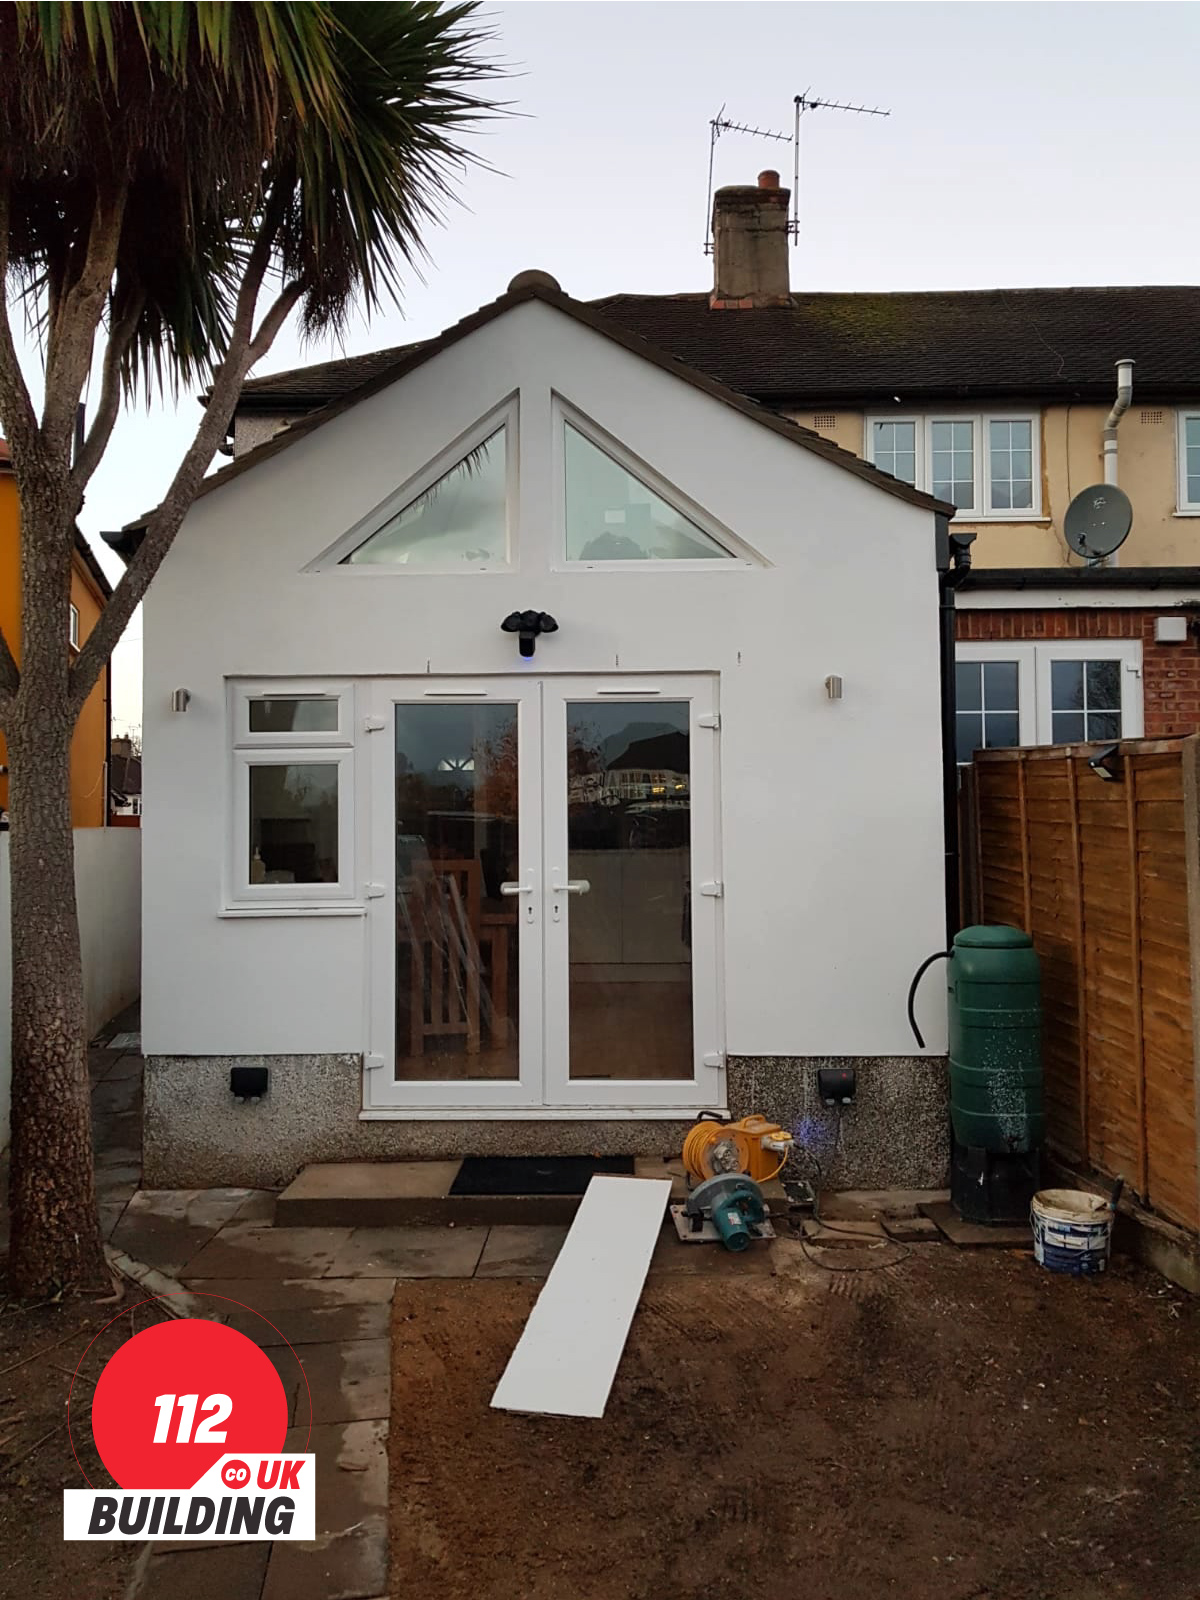 Extension builders in London